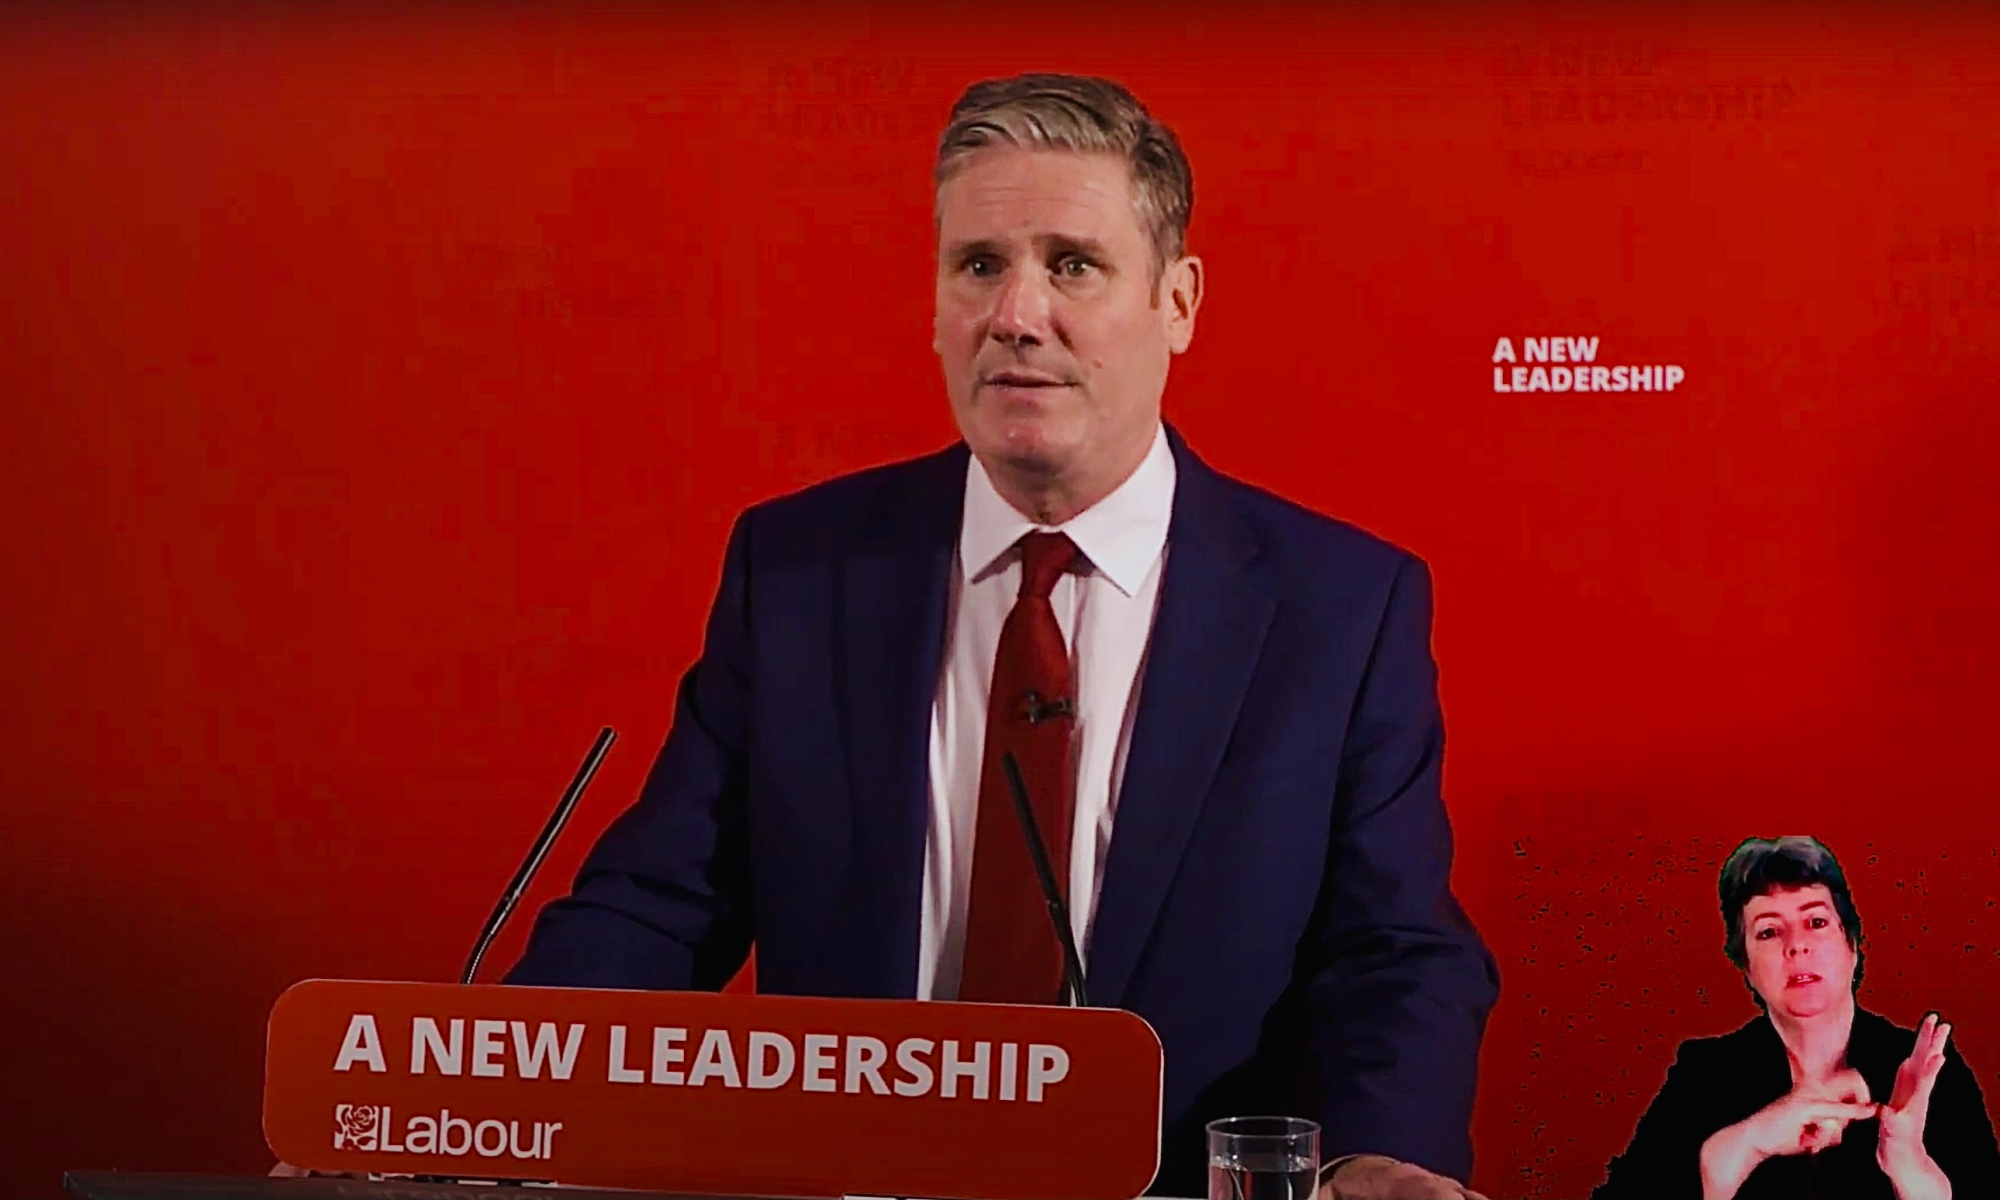 Sir Keir Starmer behind a podium with the words 'A New Leadership' on it. A BSL interpreter is visible in the bottom right.